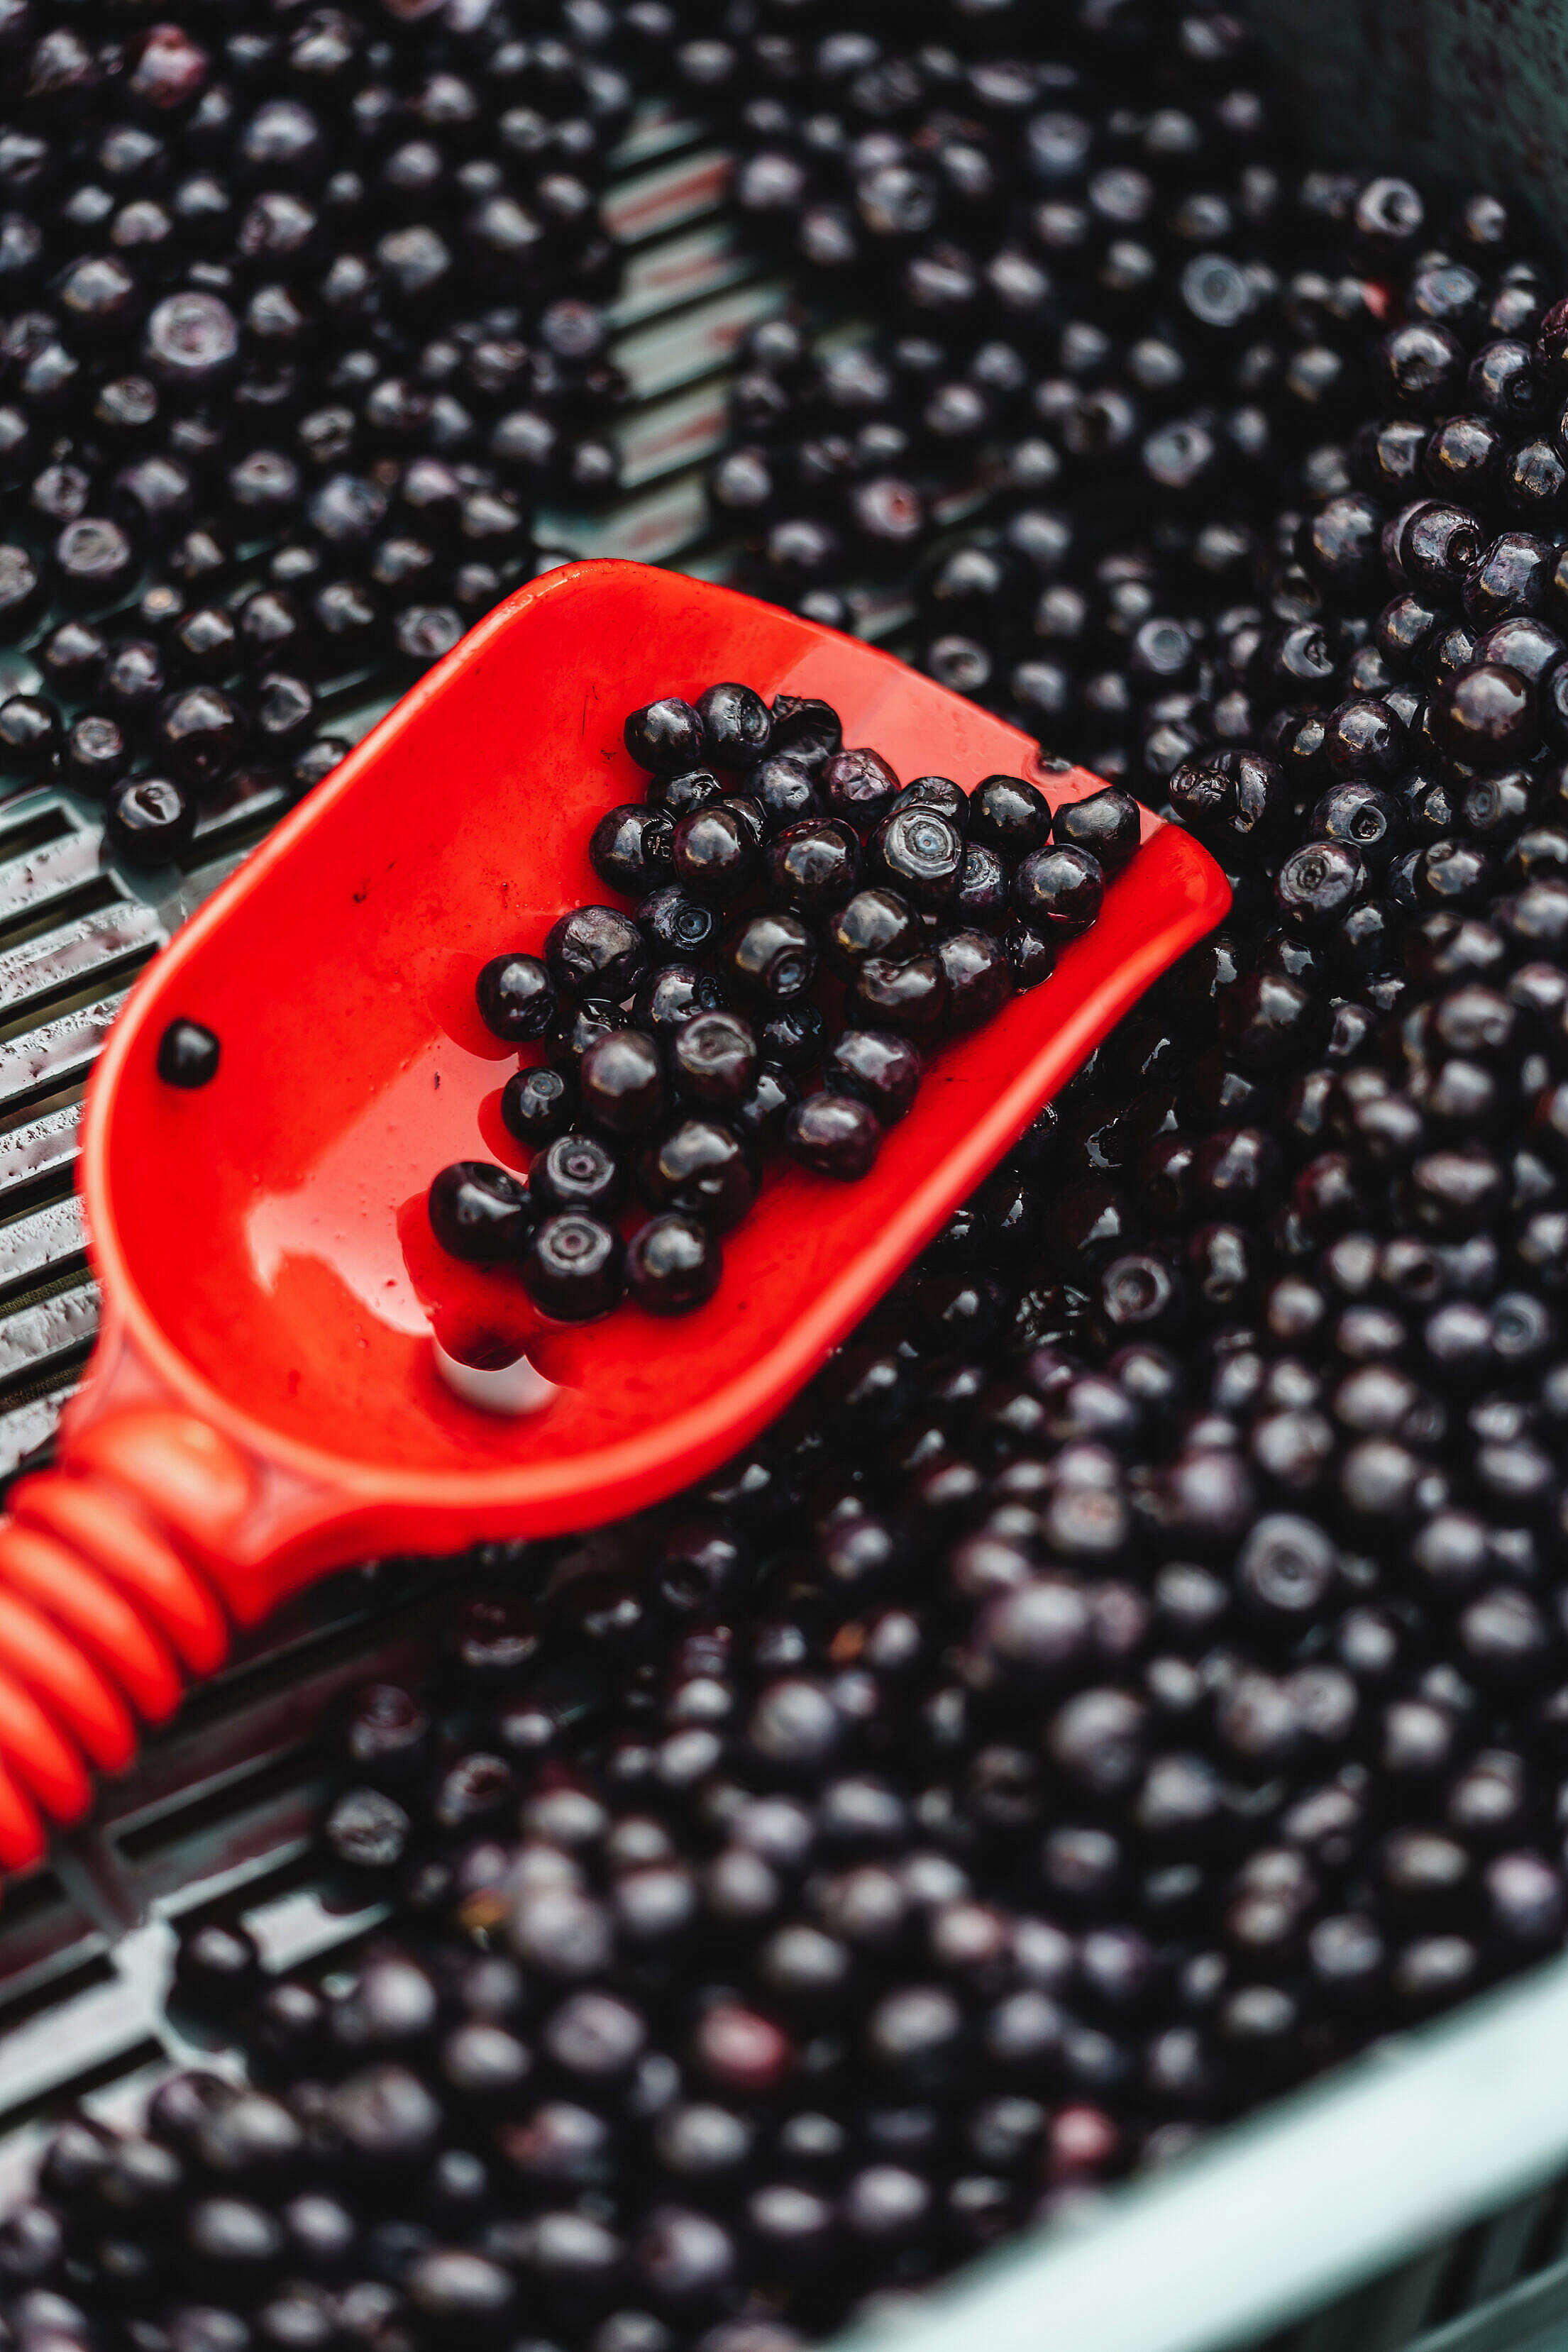 Heap of Blueberries in The Shovel Free Stock Photo